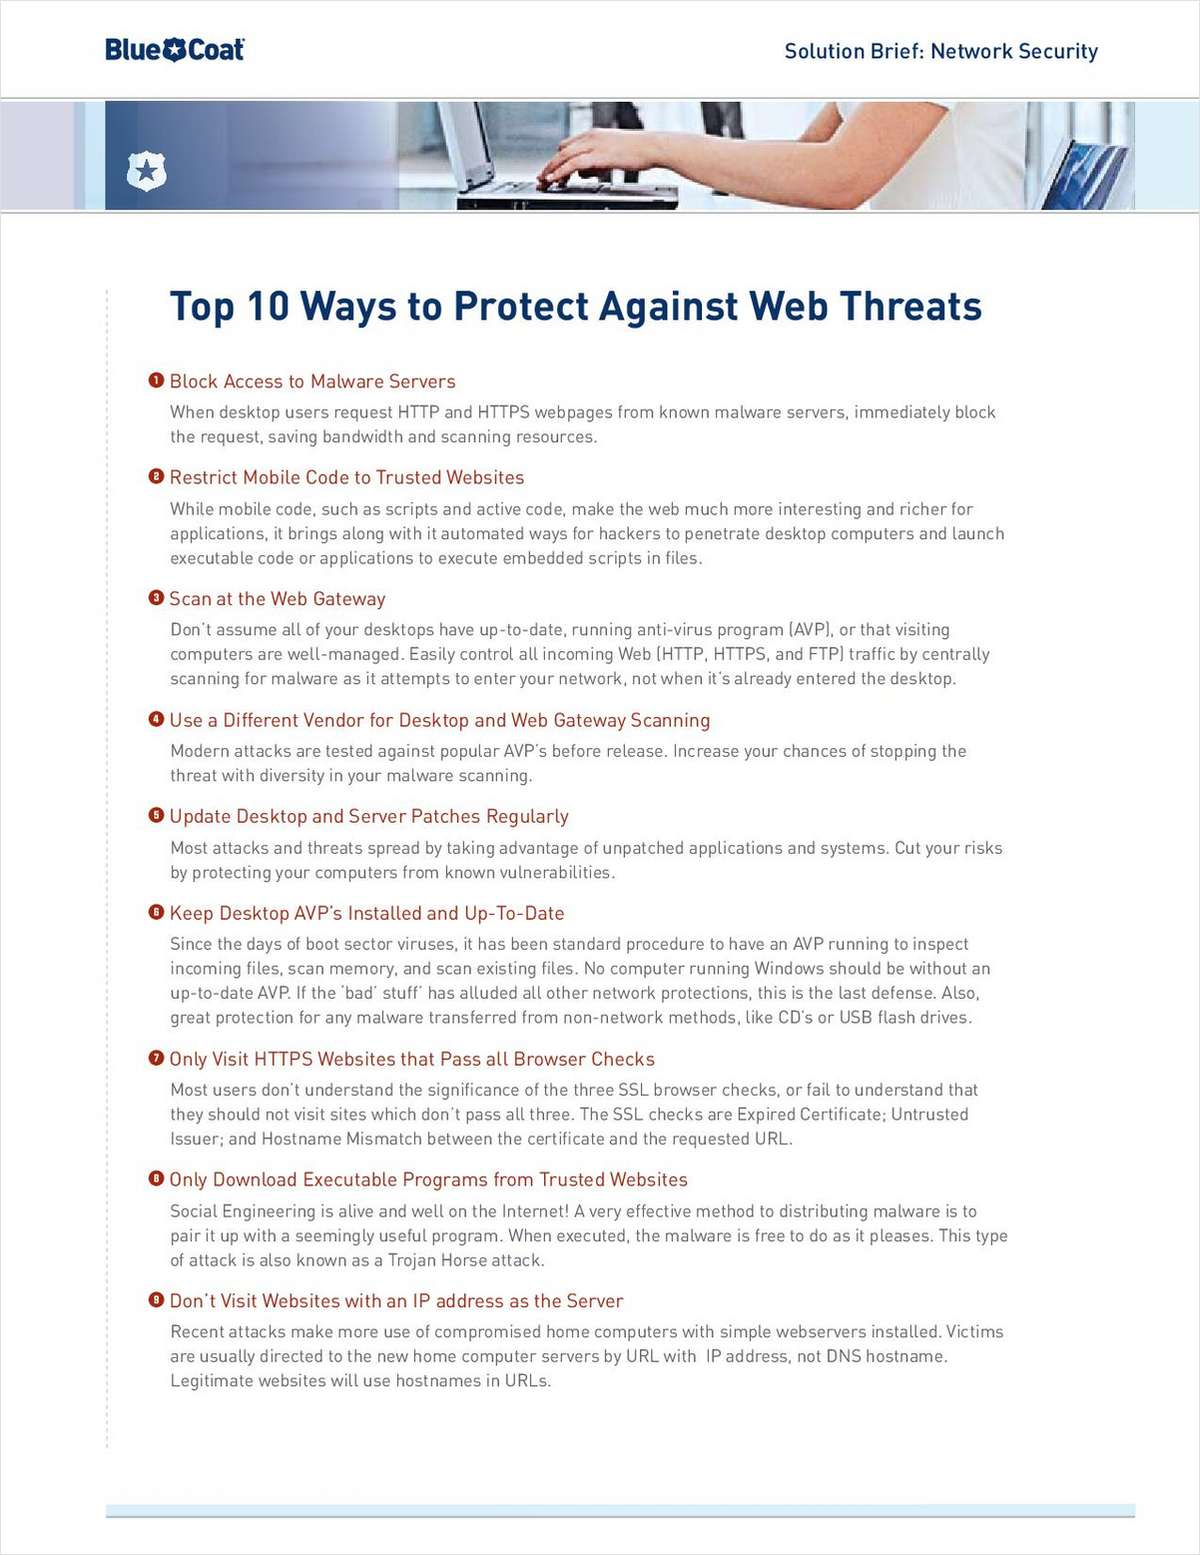 Top 10 Ways to Protect Against Web Threats